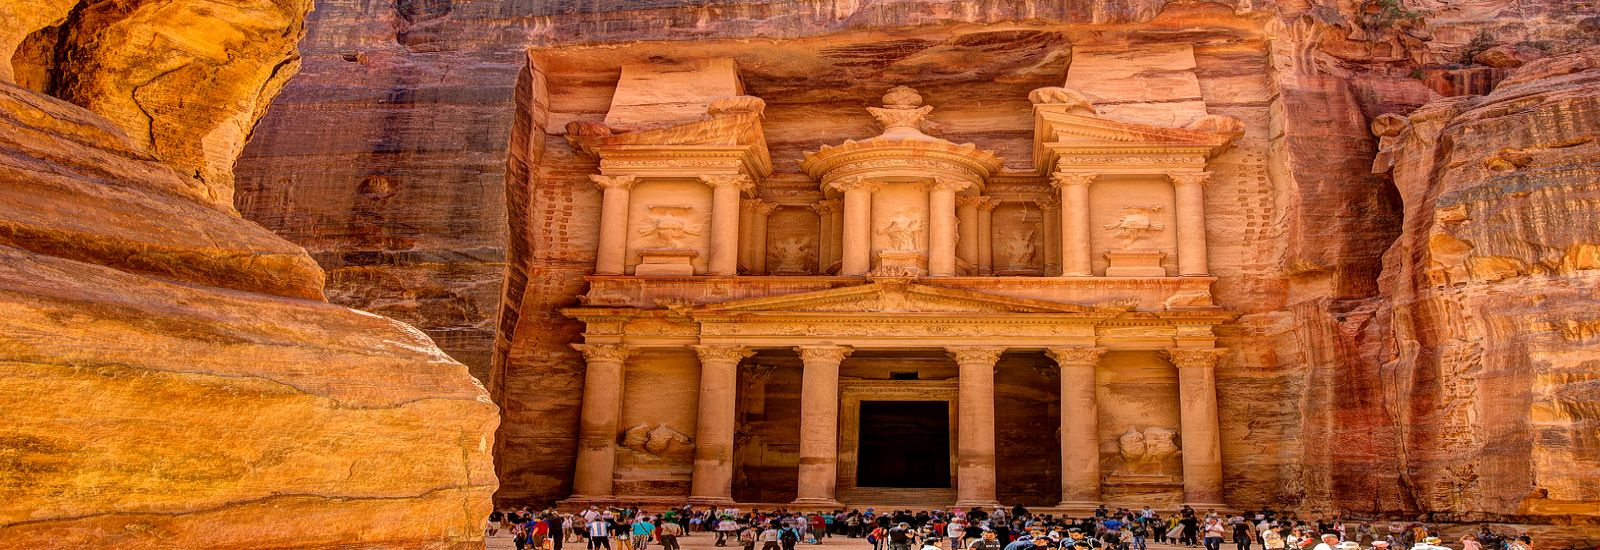 Petra Day Tour from Tel Aviv $250